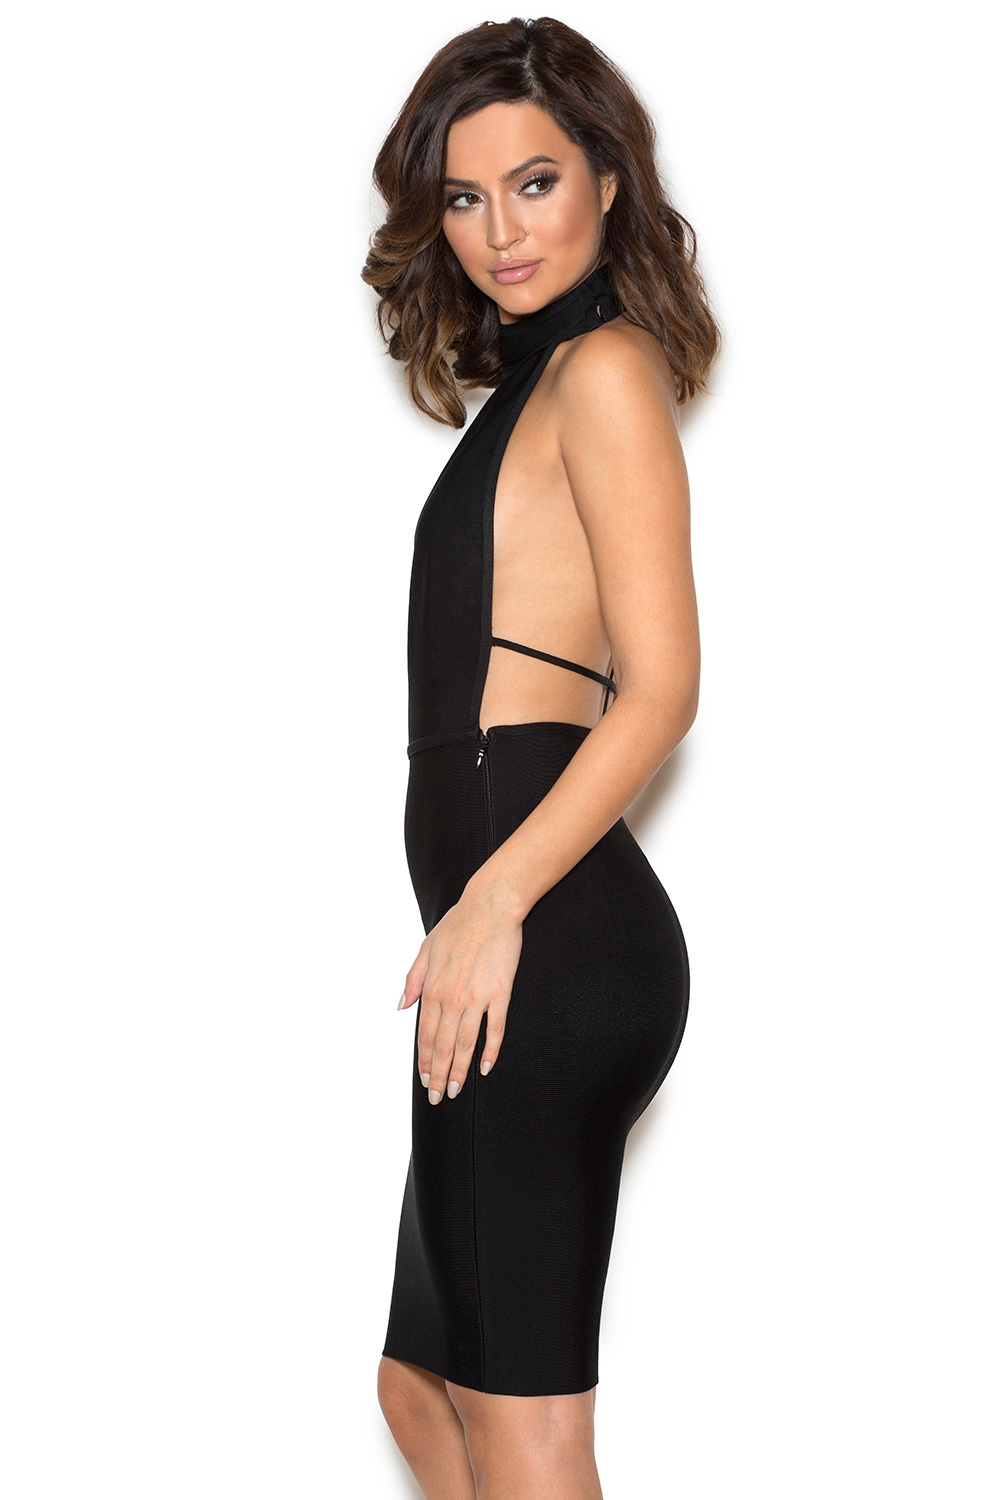 Clothing  Bandage Dresses  Eleni Black Low Back Halter Bandage Dress